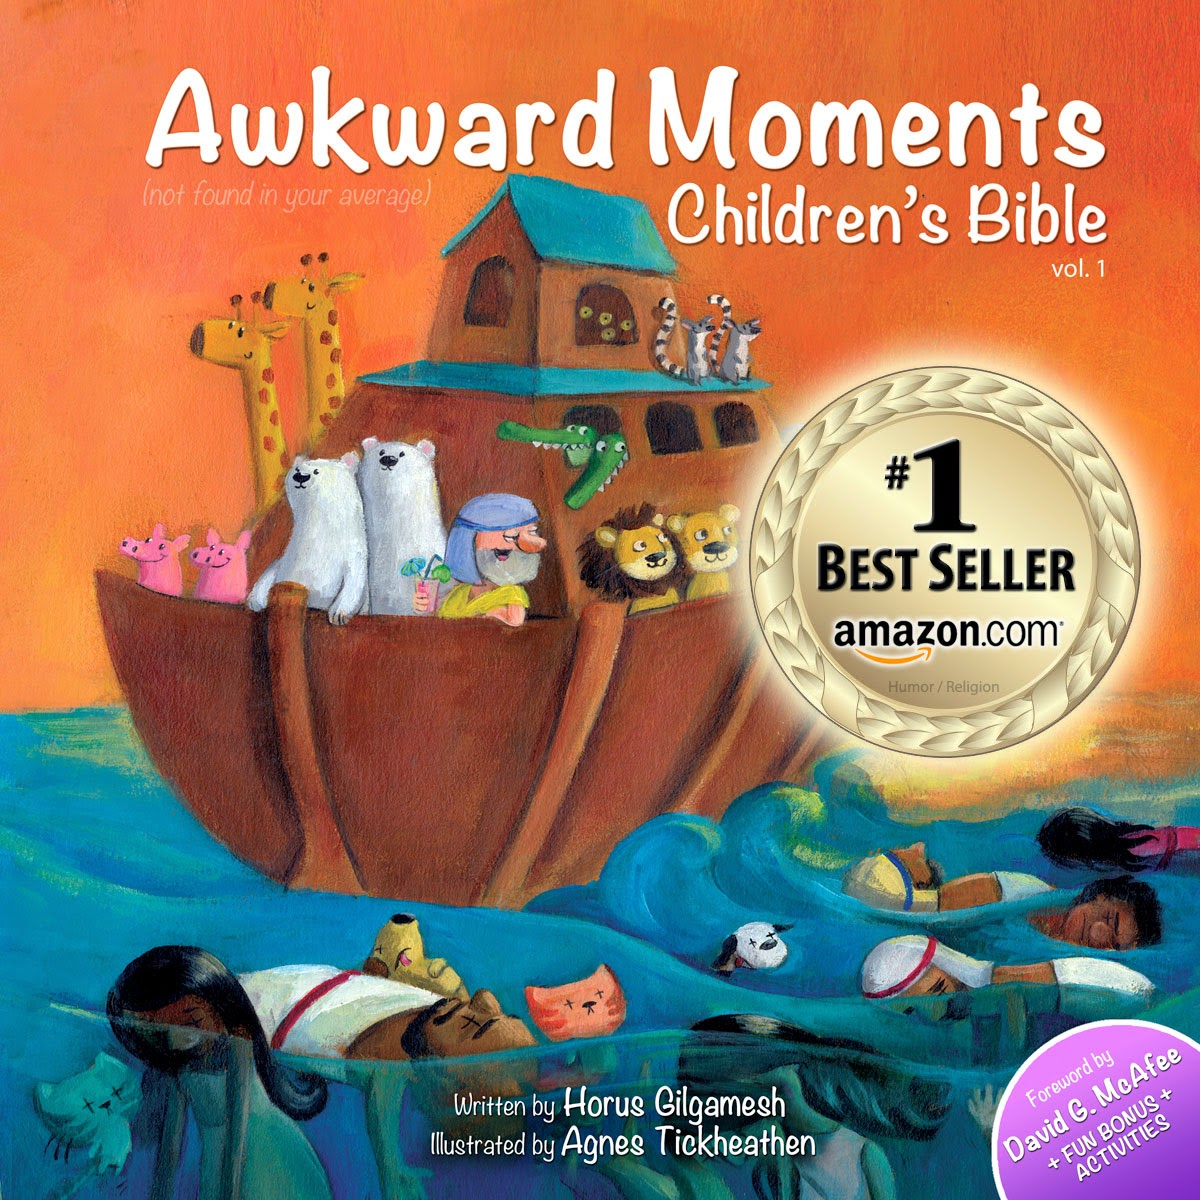 funny children's bible joke book - awkward moments